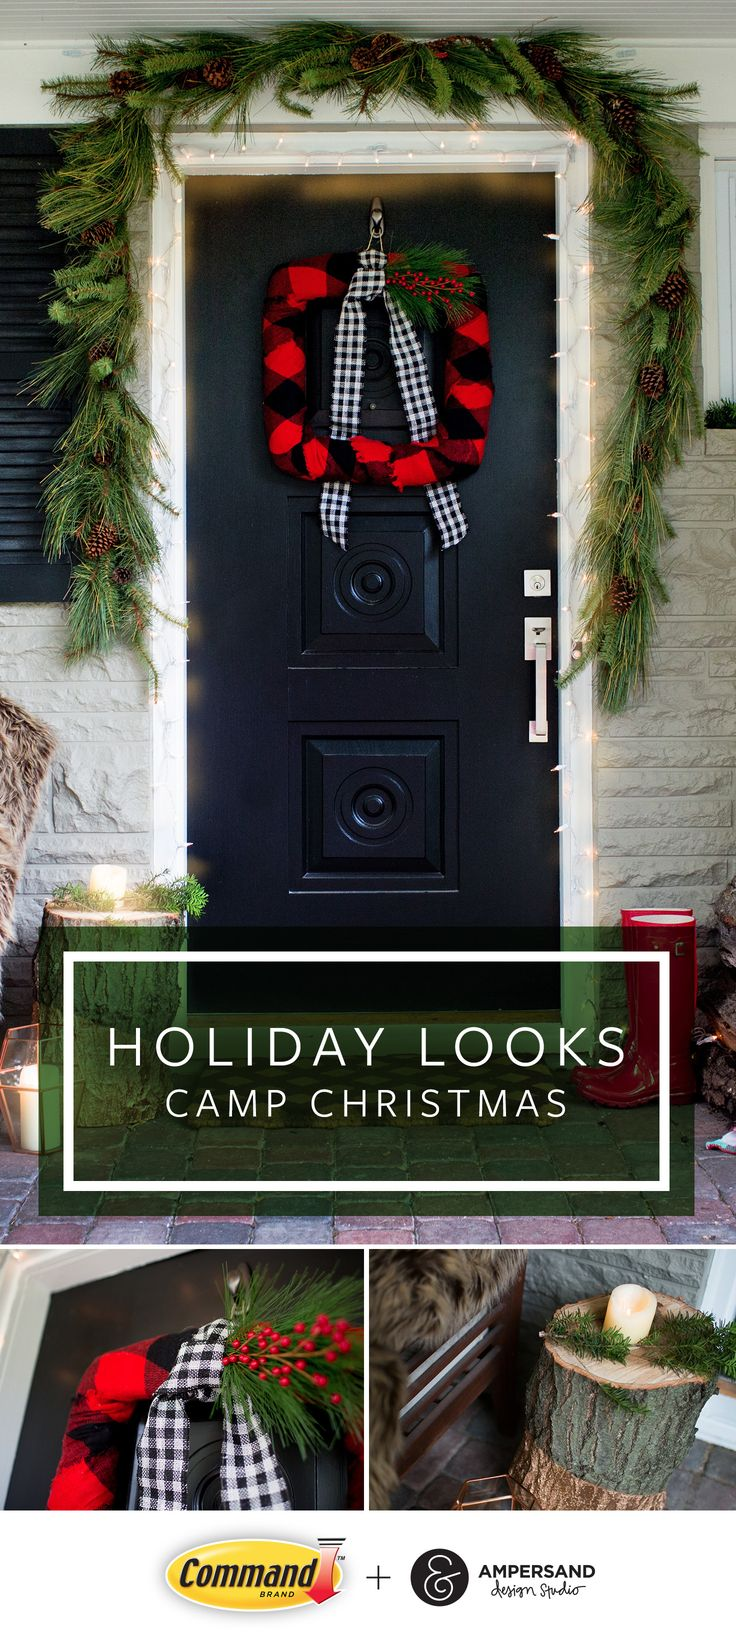 Create an outdoor holiday décor look that embraces all of the cozy things you love about the holidays with Camp Christmas by Command™ Brand & Ampersand Design Studio. Outdoor holiday decorating trends like Camp Christmas combine the natural aspects of the holiday season and the classic red and green holiday color combinations mixed trendy plaid patterns for a modern look. Complete this cozy holiday trend with twinkle lights and a faux fur blanket to snuggle up in on those chilly winter…